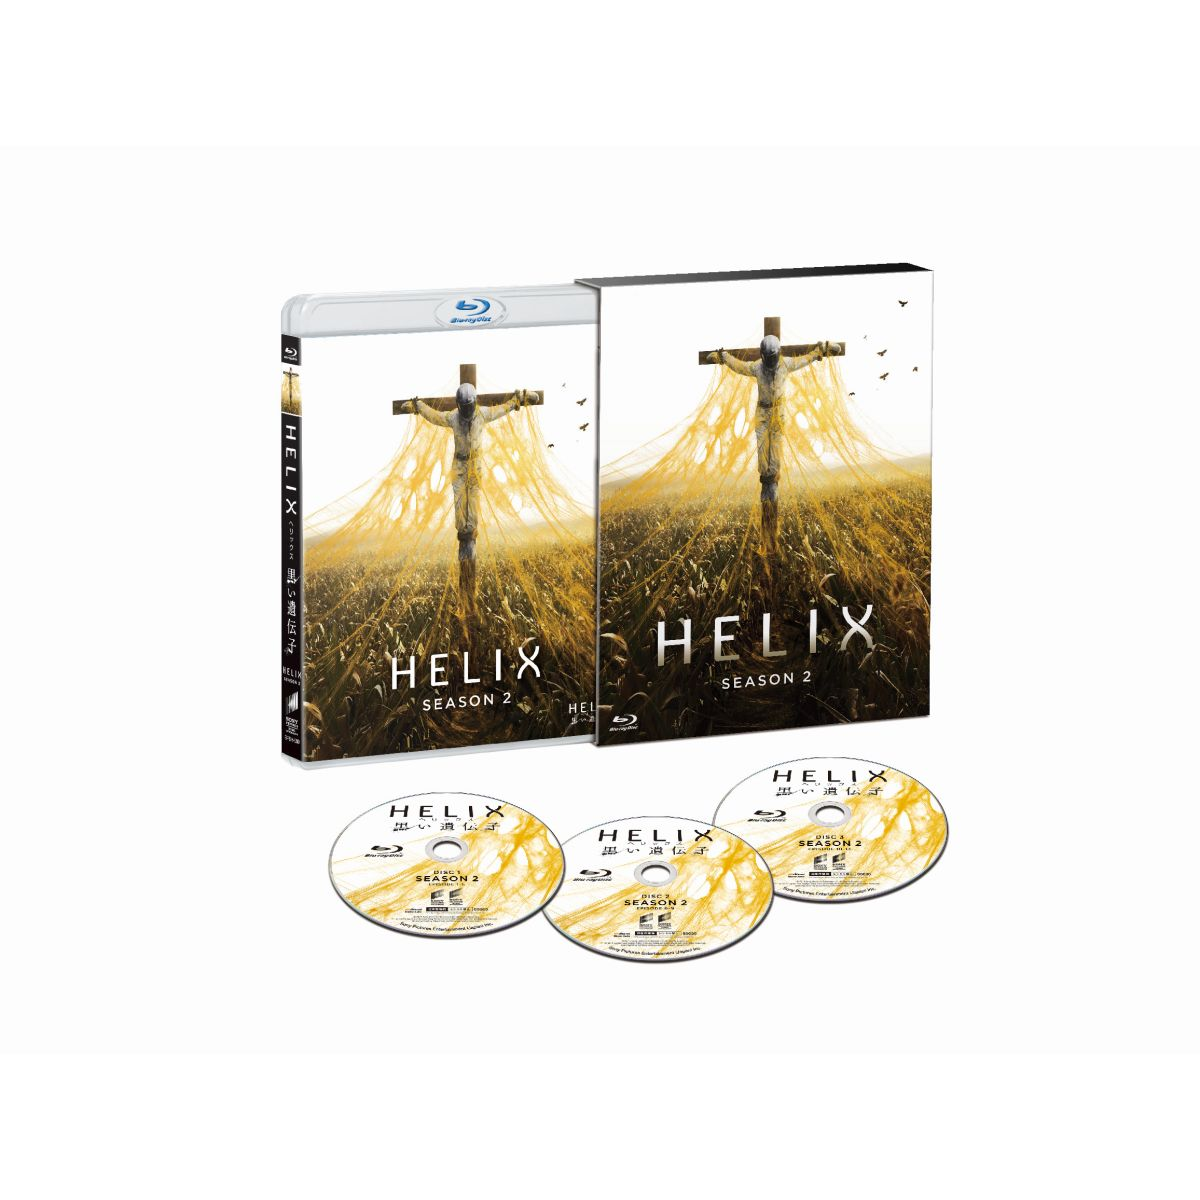 HELIX-黒い遺伝子ーシーズン2COMPLETEBOX【Blu-ray】[ビリー・キャンベル]